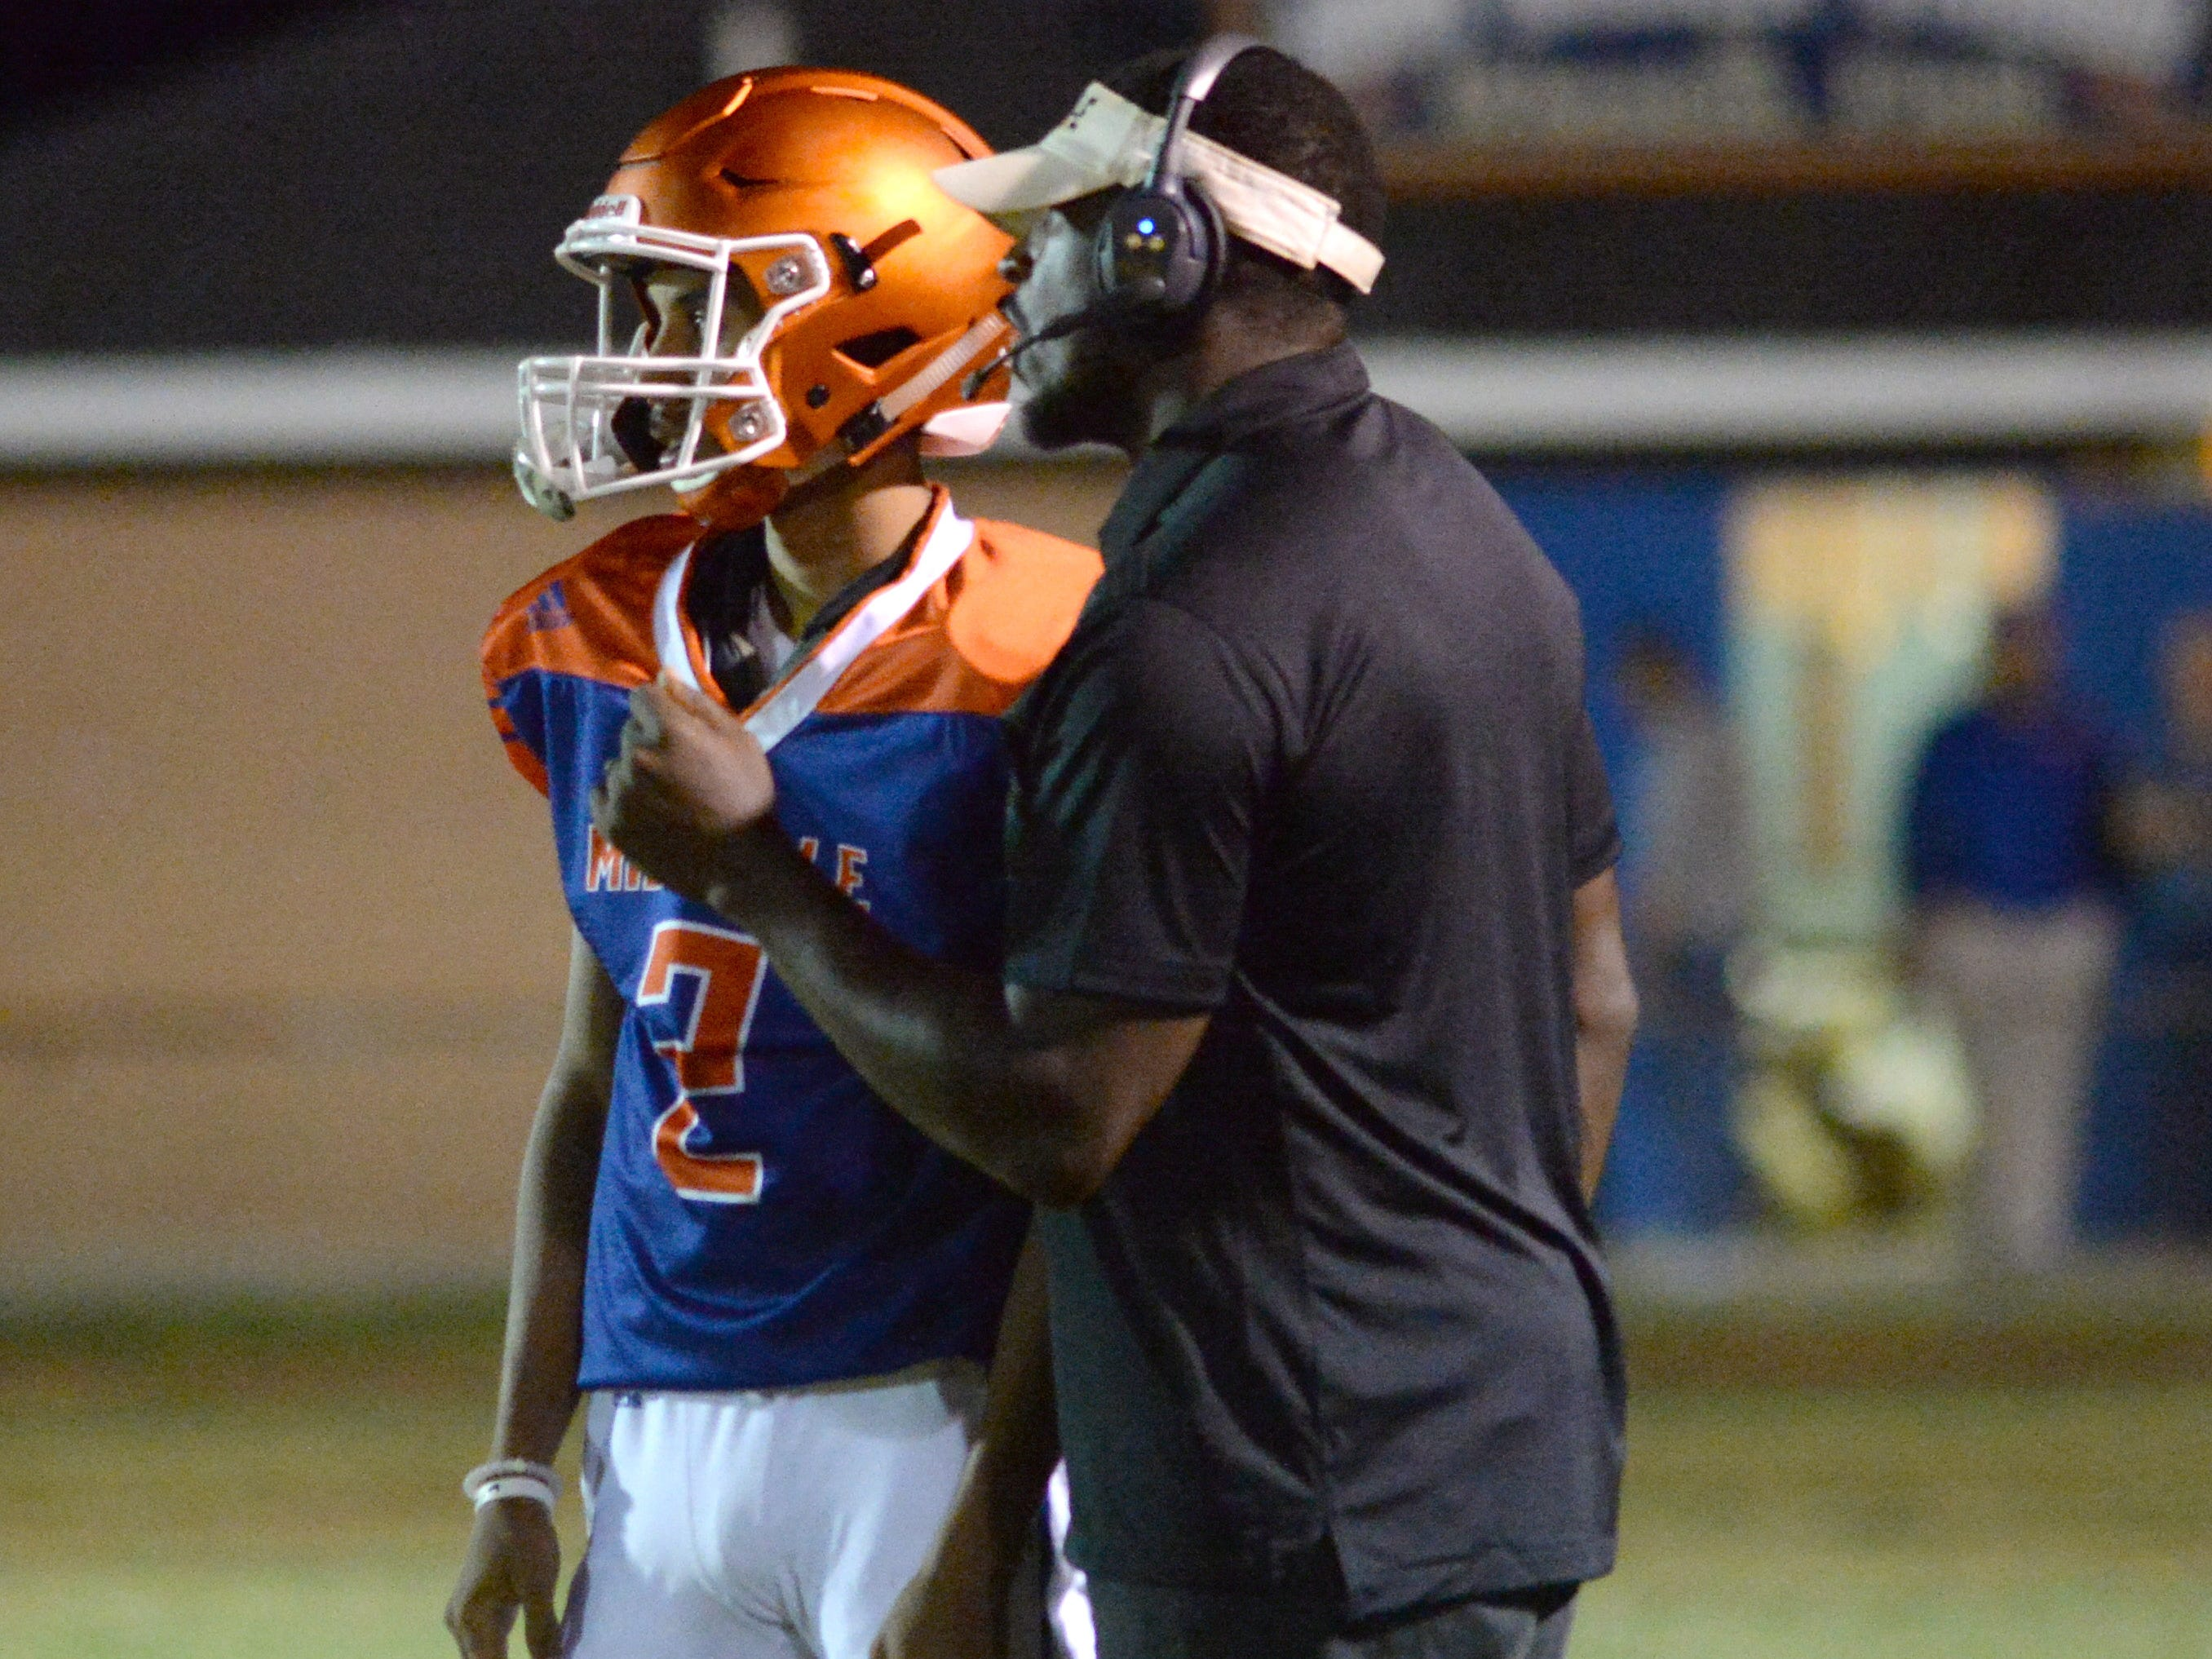 Millville's quarterback Eddie Jamison talks with coach Dennis Thomas during the season opening football game against St. Peter's Prep at Millville Memorial High School, Friday, Aug. 31, 2018.